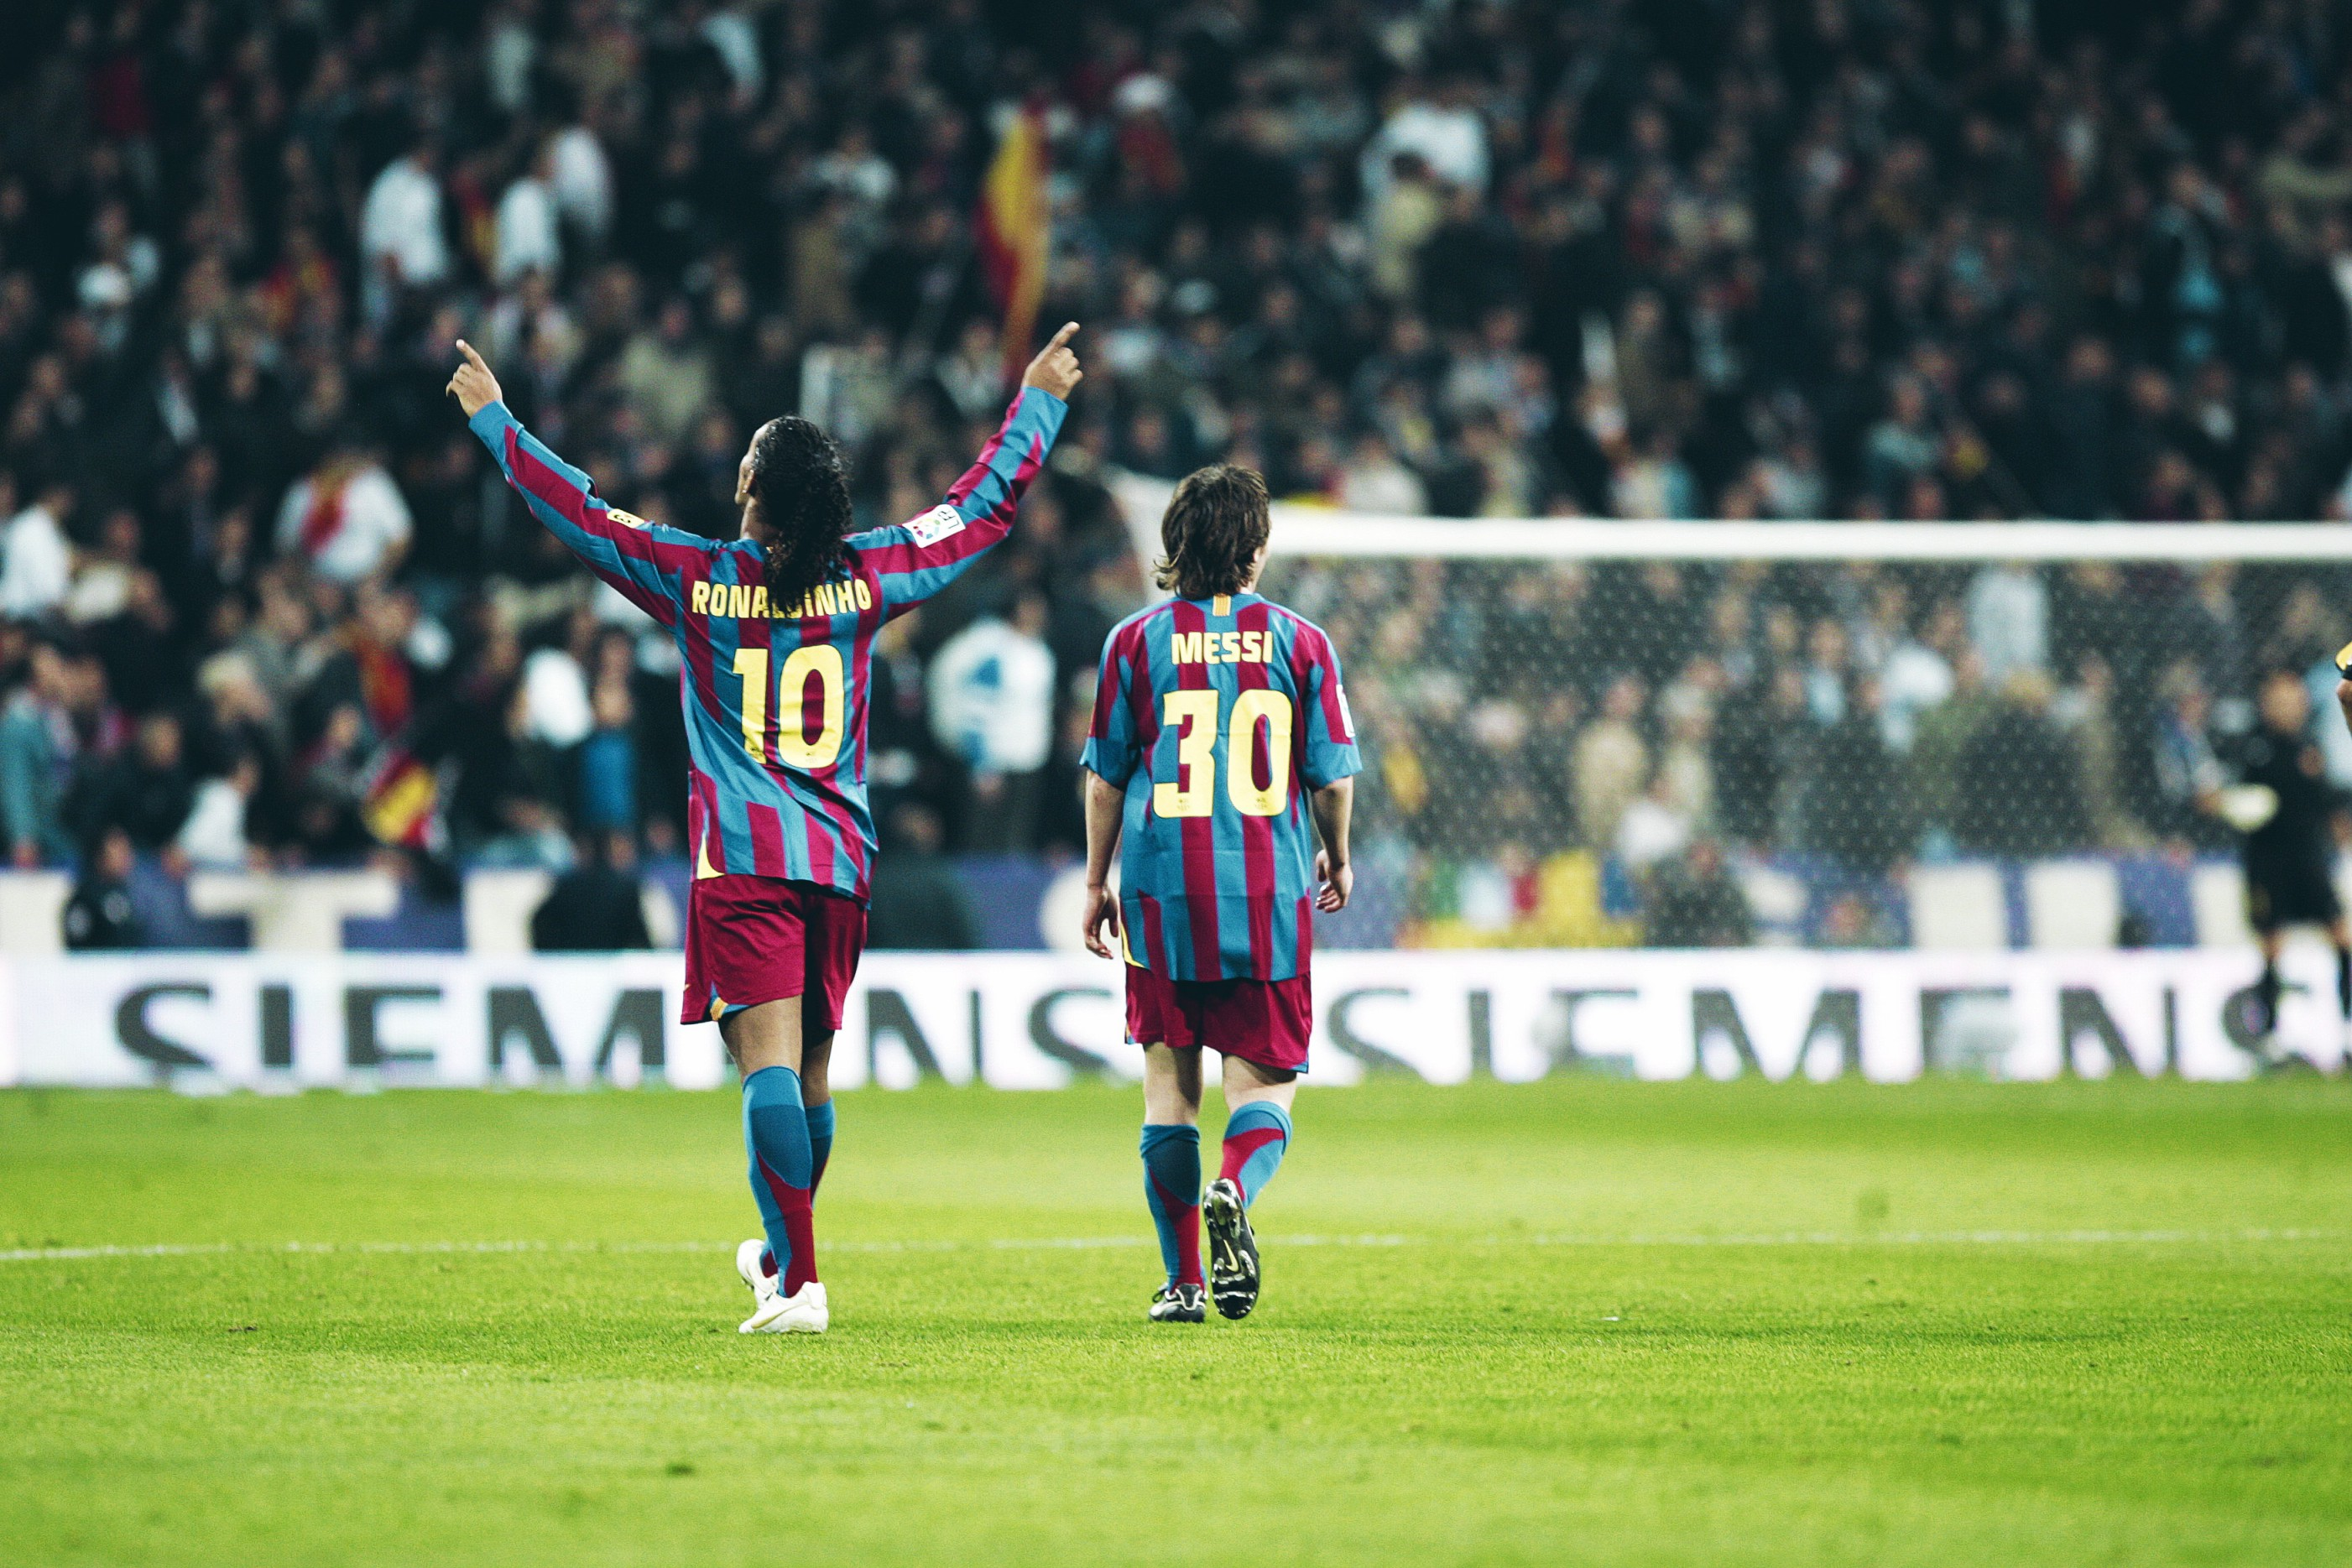 Image result for Ronaldinho with messi